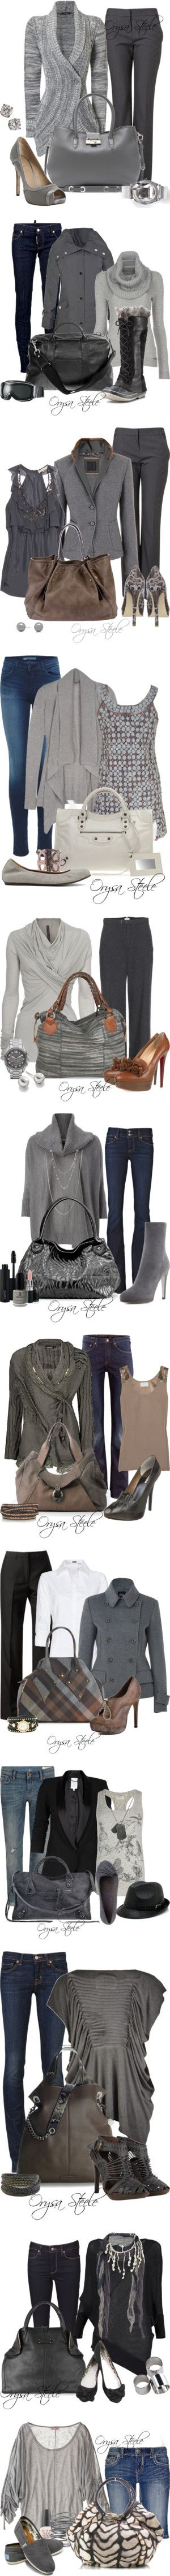 """""""Shades of Grey"""" by orysa on Polyvore"""